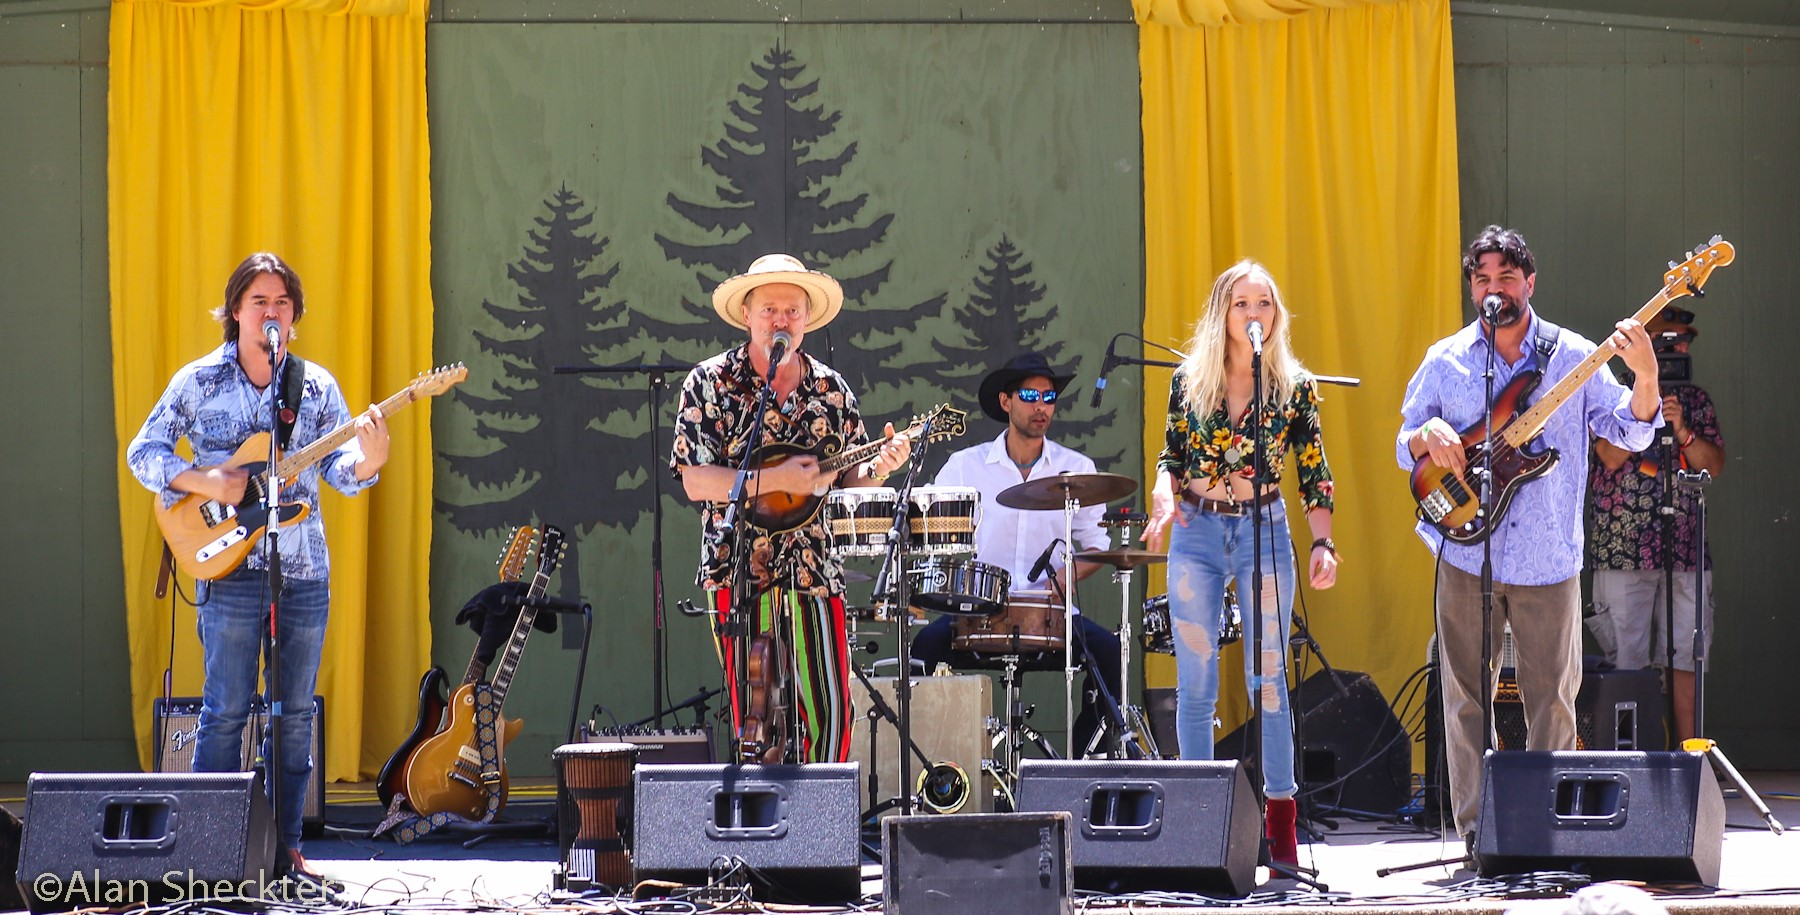 Joe Craven & the Sometimers, California WorldFest, July 14, 2018